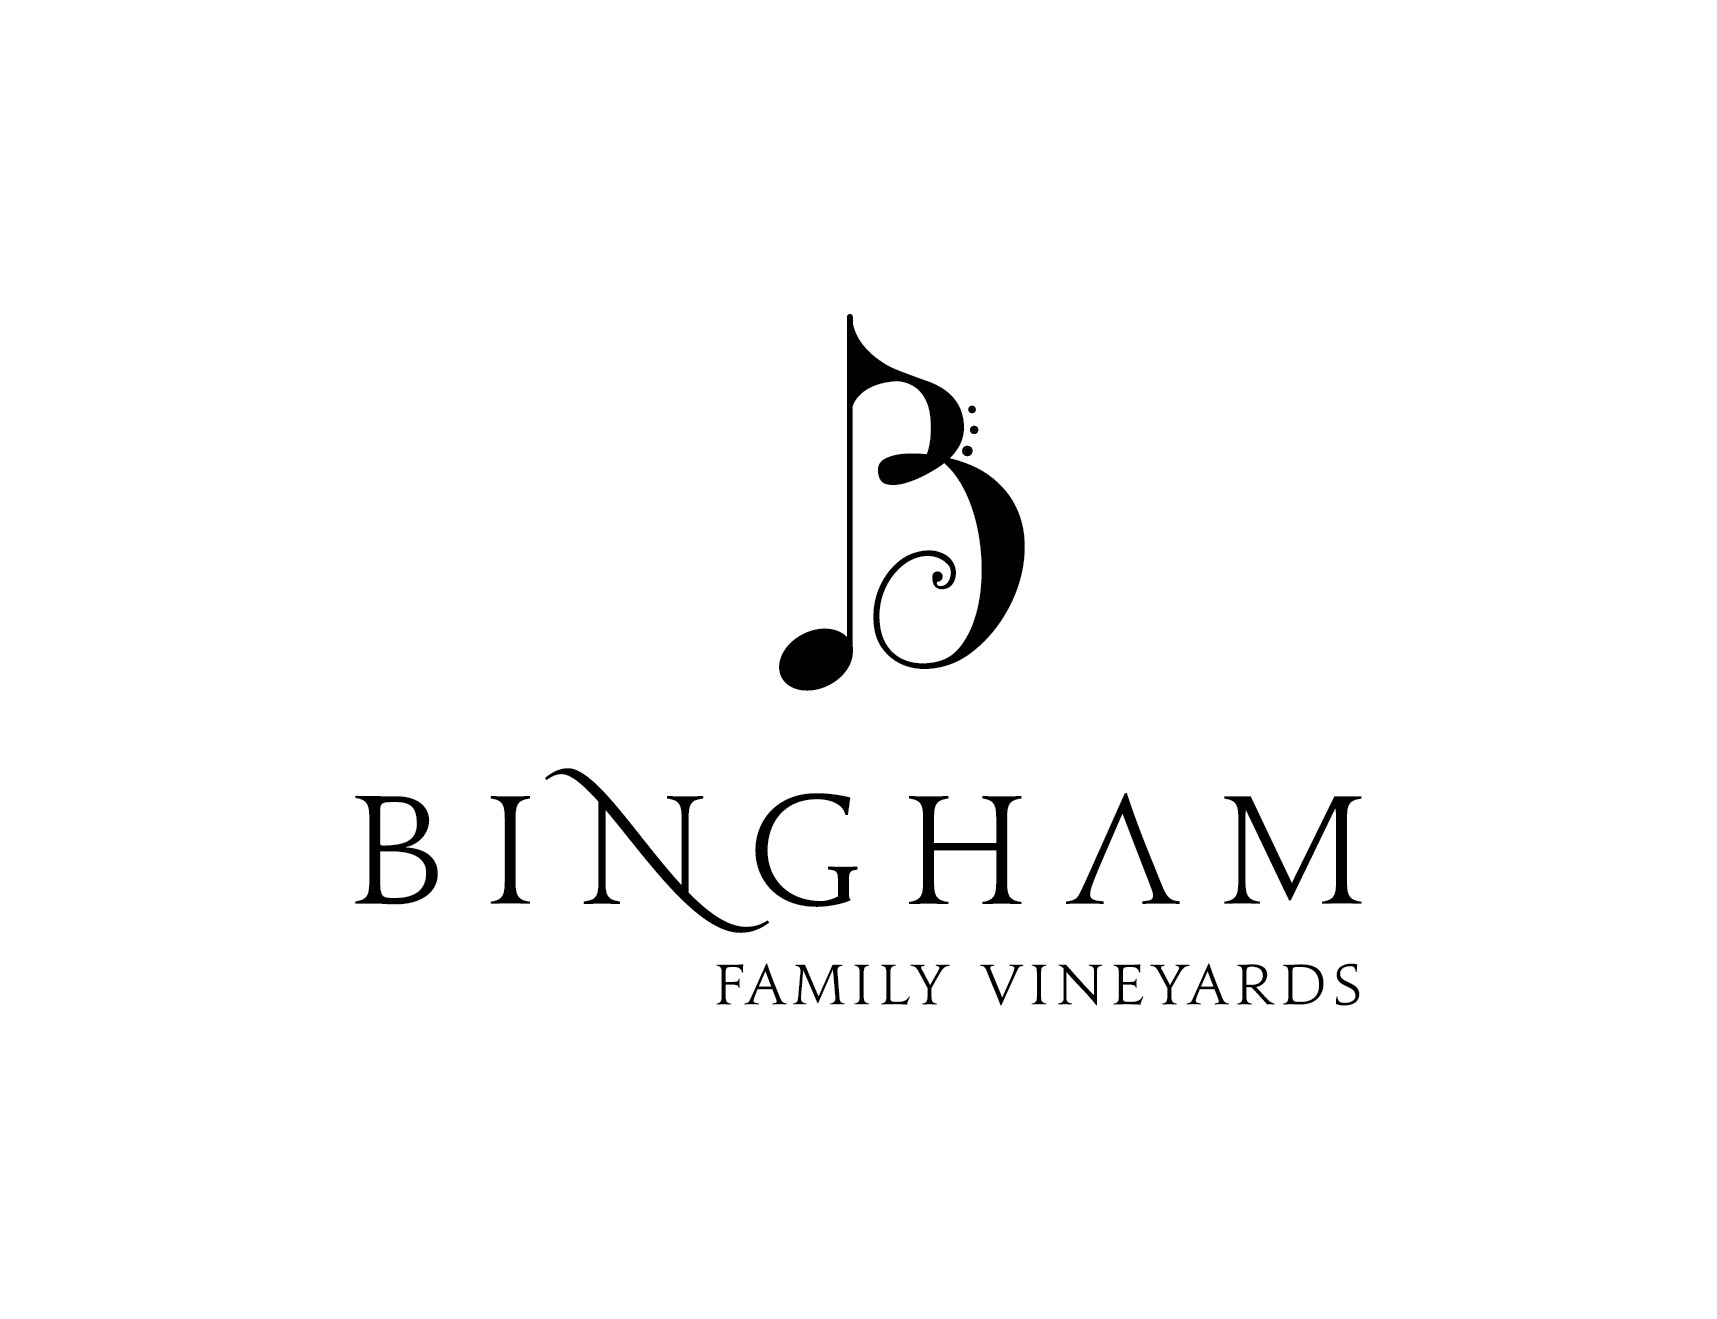 Bingham Family Vineyard logo